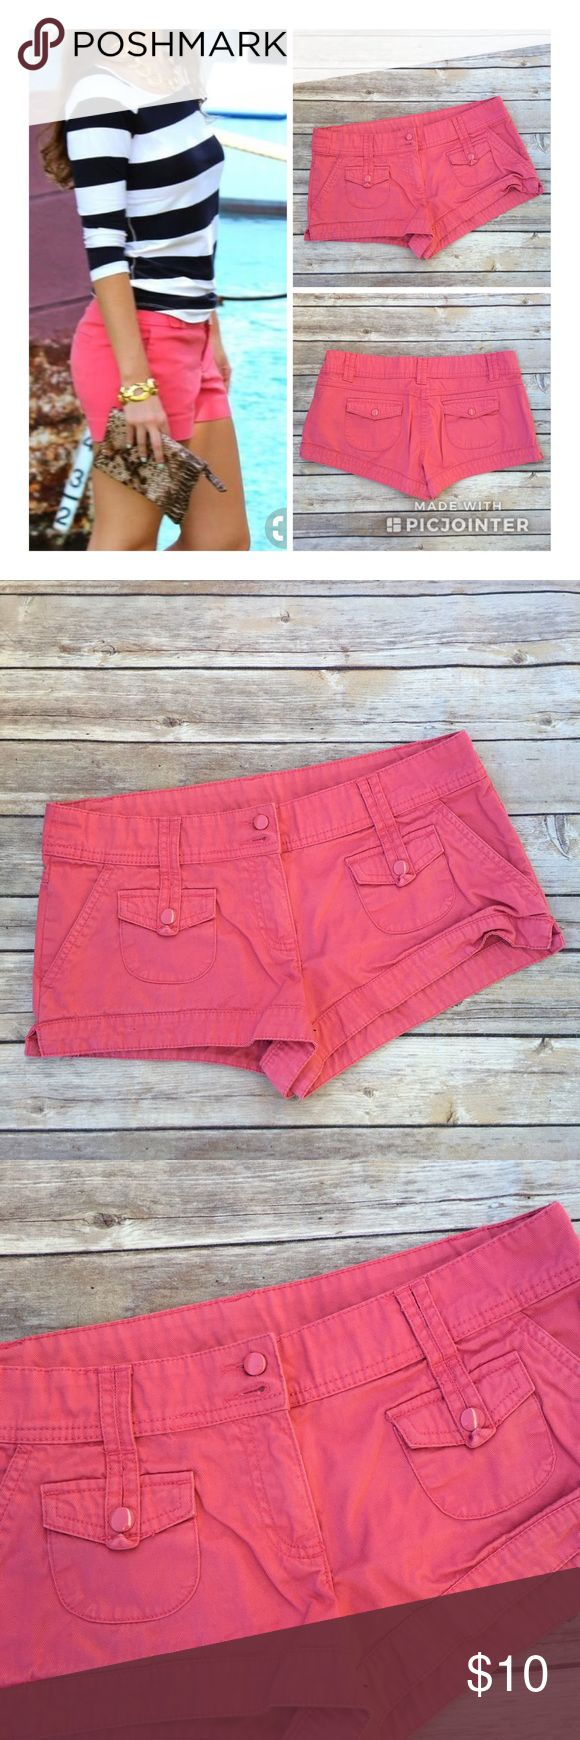 Hot Pink Shorts from H&M Great condition. Worn only a couple of times. No rips or stains. Smoke free and pet free home / environment. Ships Immediately! 💕 BUNDLE with another items and save 20% 🔥💯 H&M Shorts